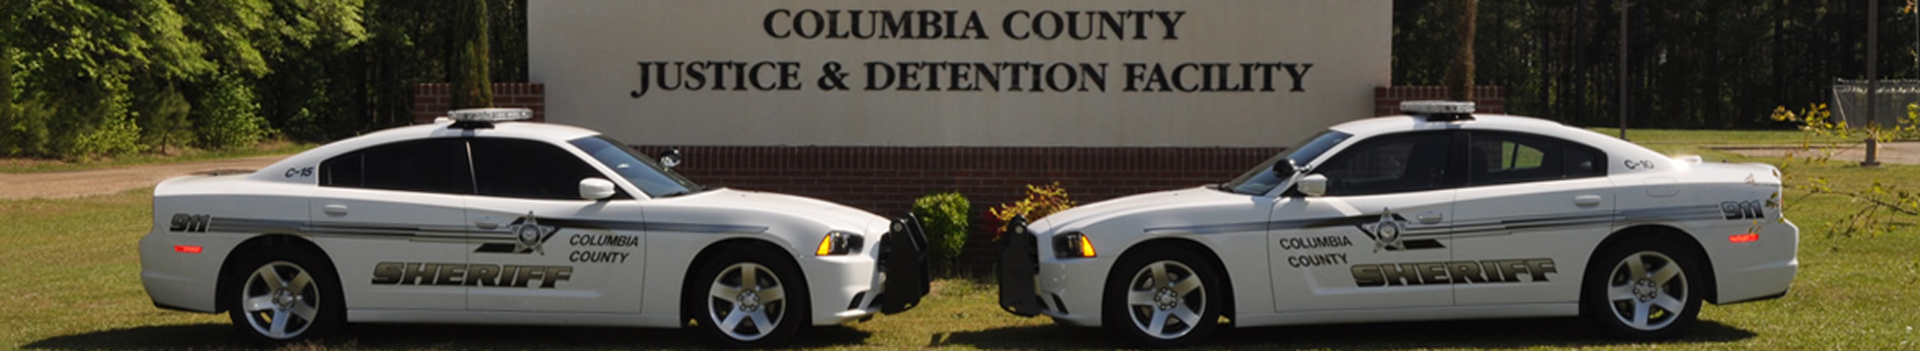 Two squad cars parked in front of the Columbia County Justice and Detention Facility